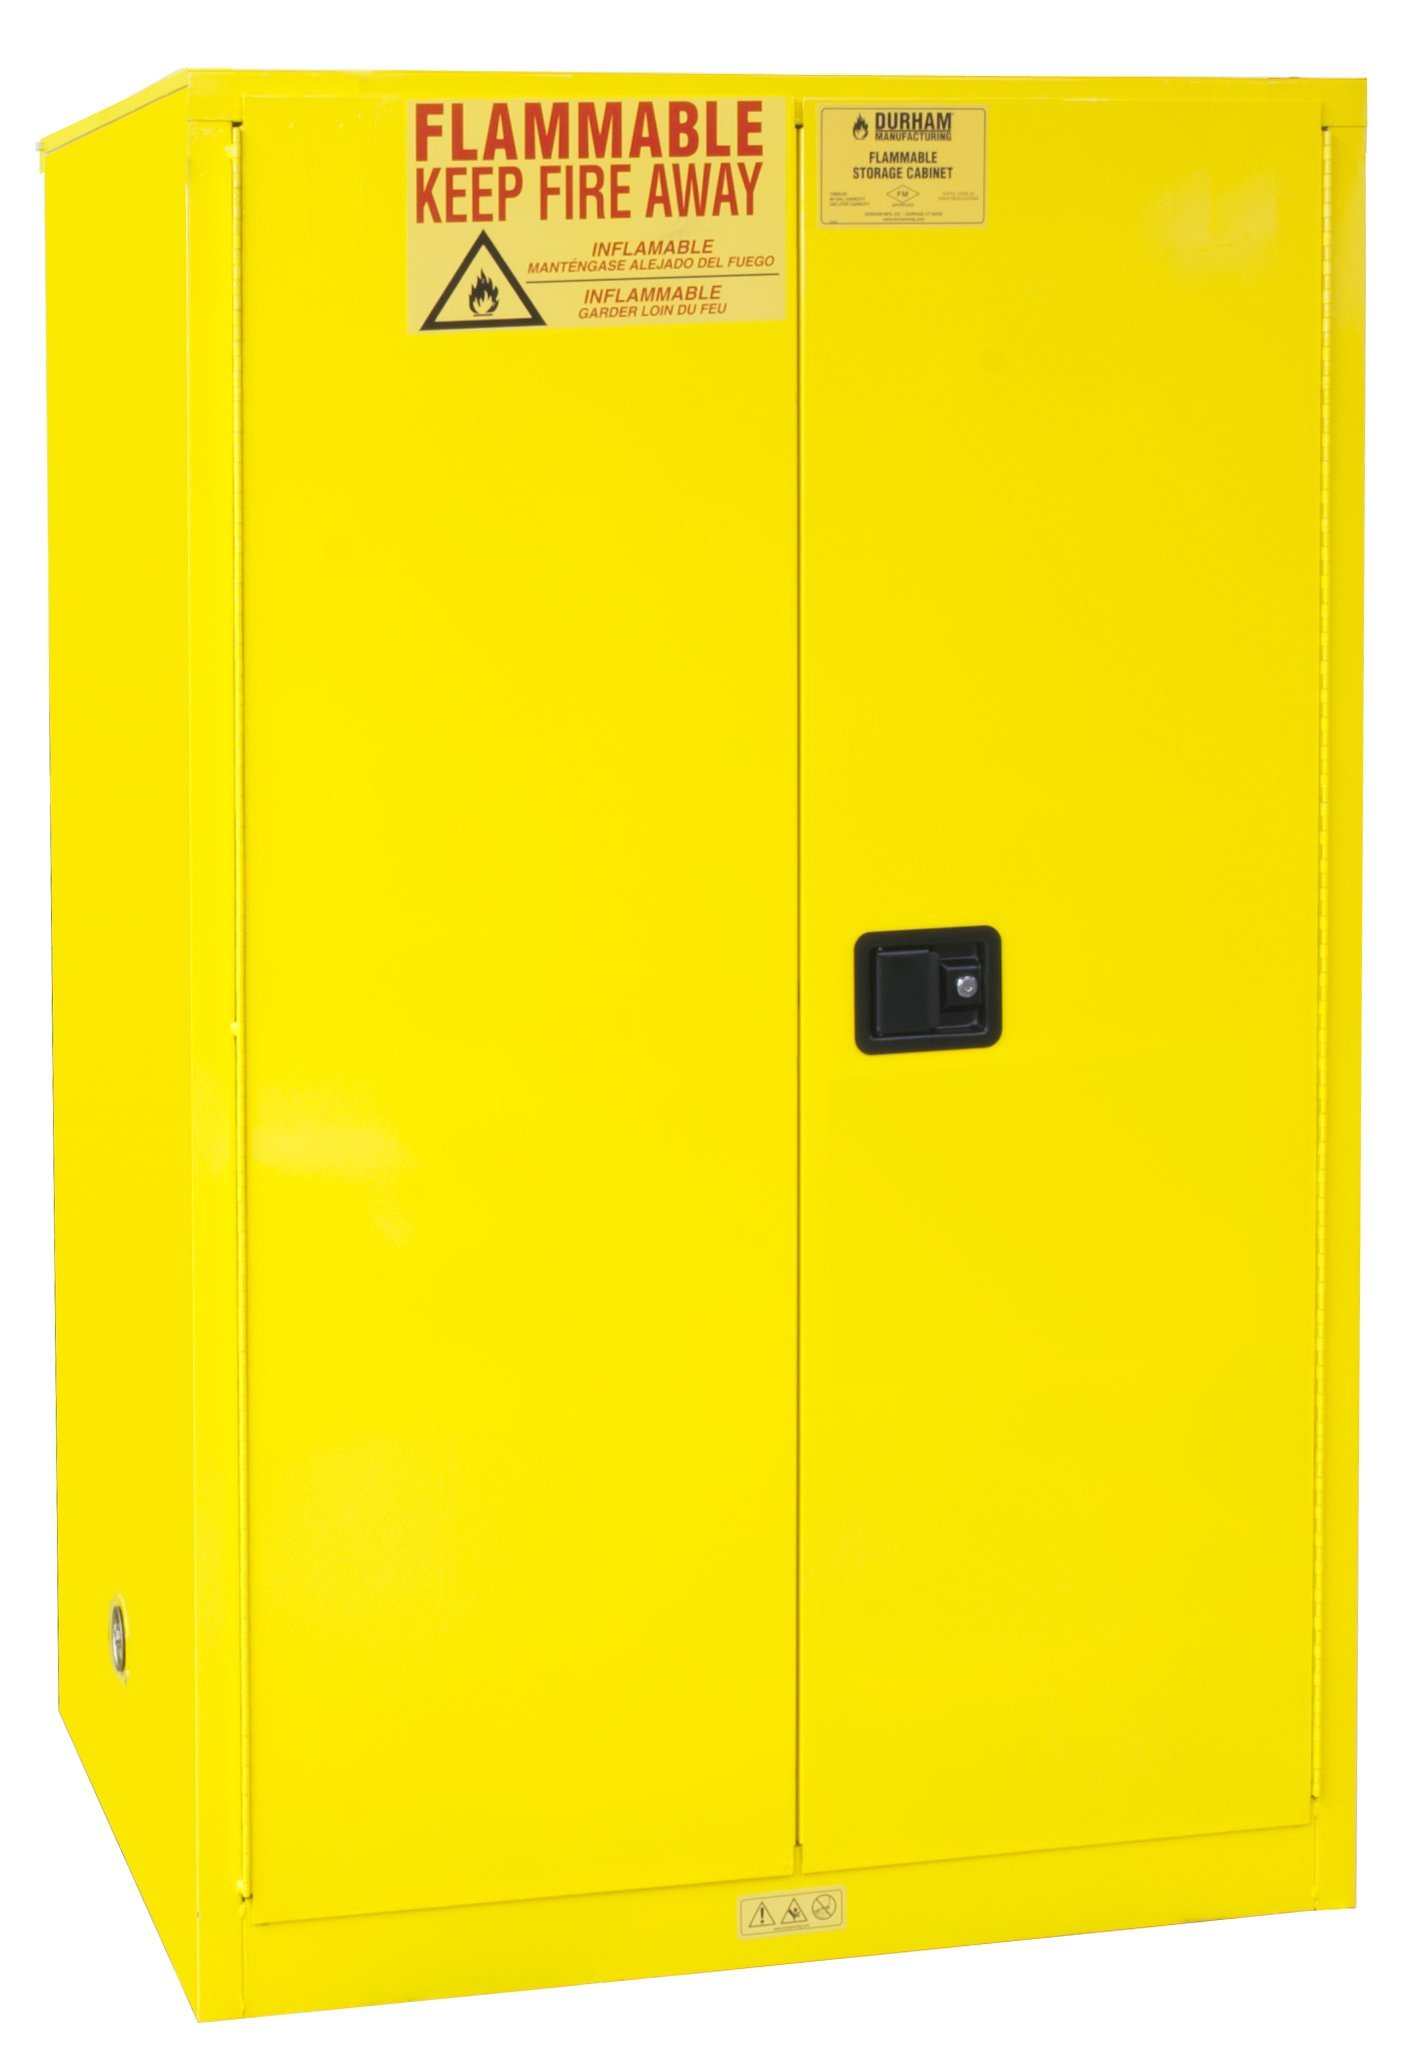 Durham FM Approved 1090M-50 Welded 16 Gauge Steel Flammable Safety Manual Door Cabinet, 2 Shelves, 90 gallons Capacity, 34'' Length x 43'' Width x 65'' Height, Yellow Powder Coat Finish